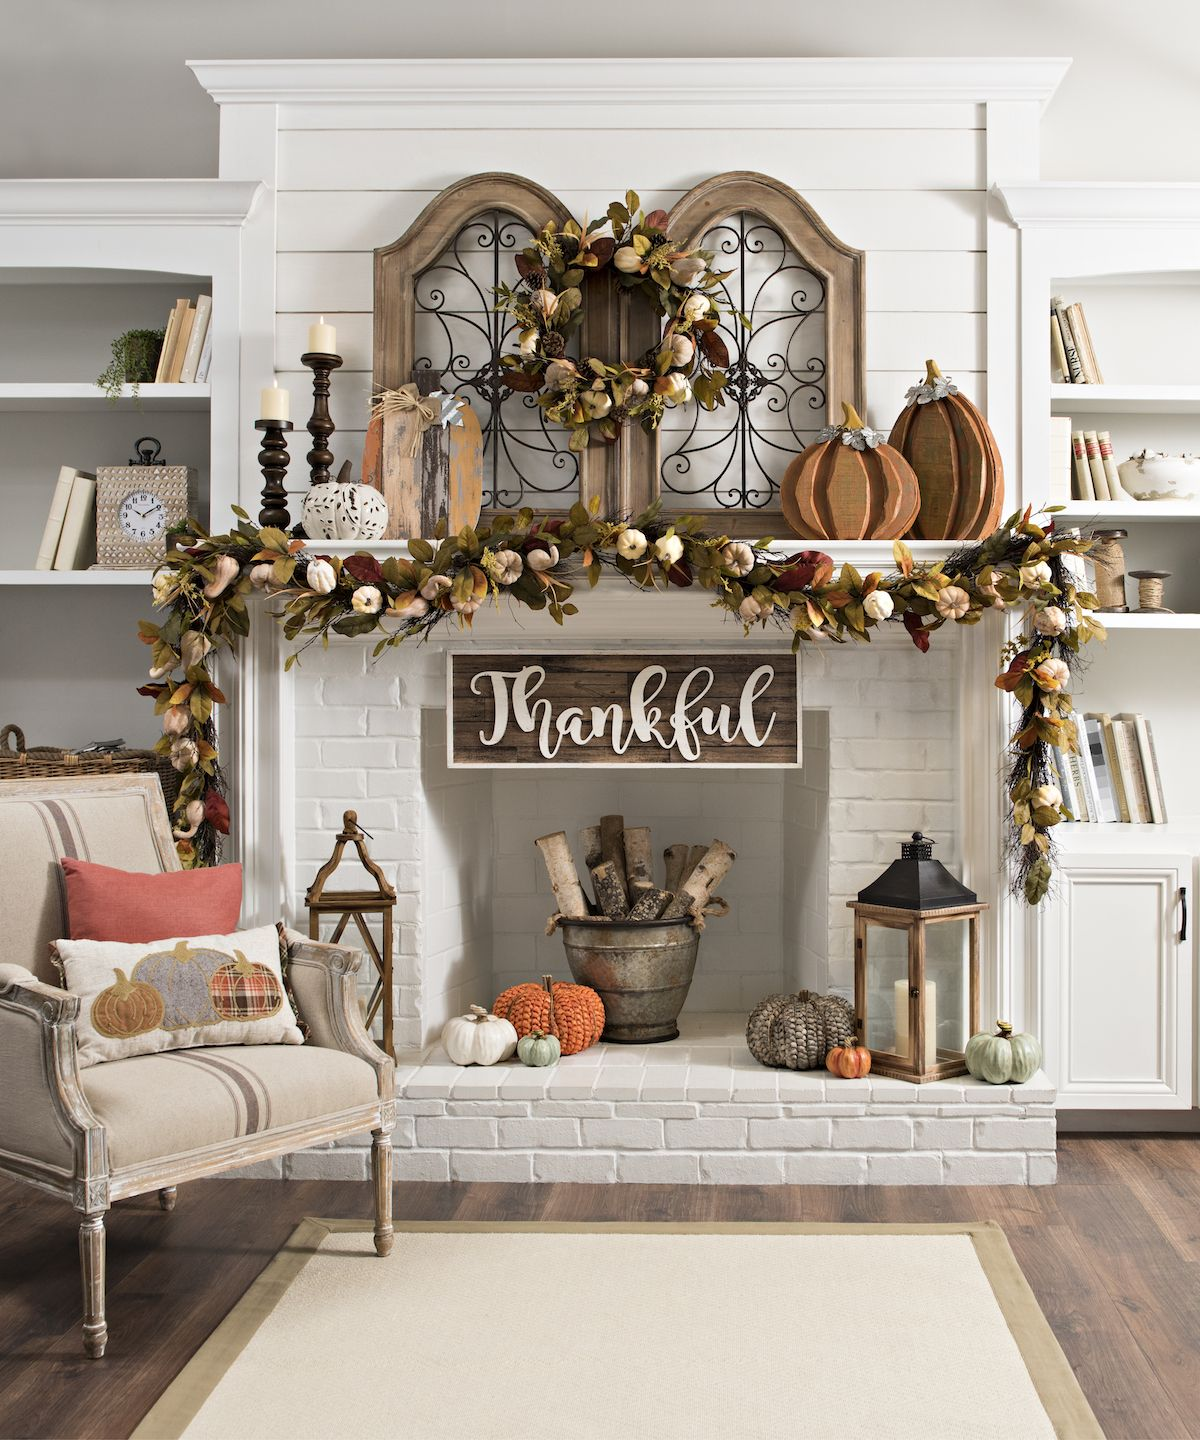 Autumn is almost here Weure decorating with these festive pieces